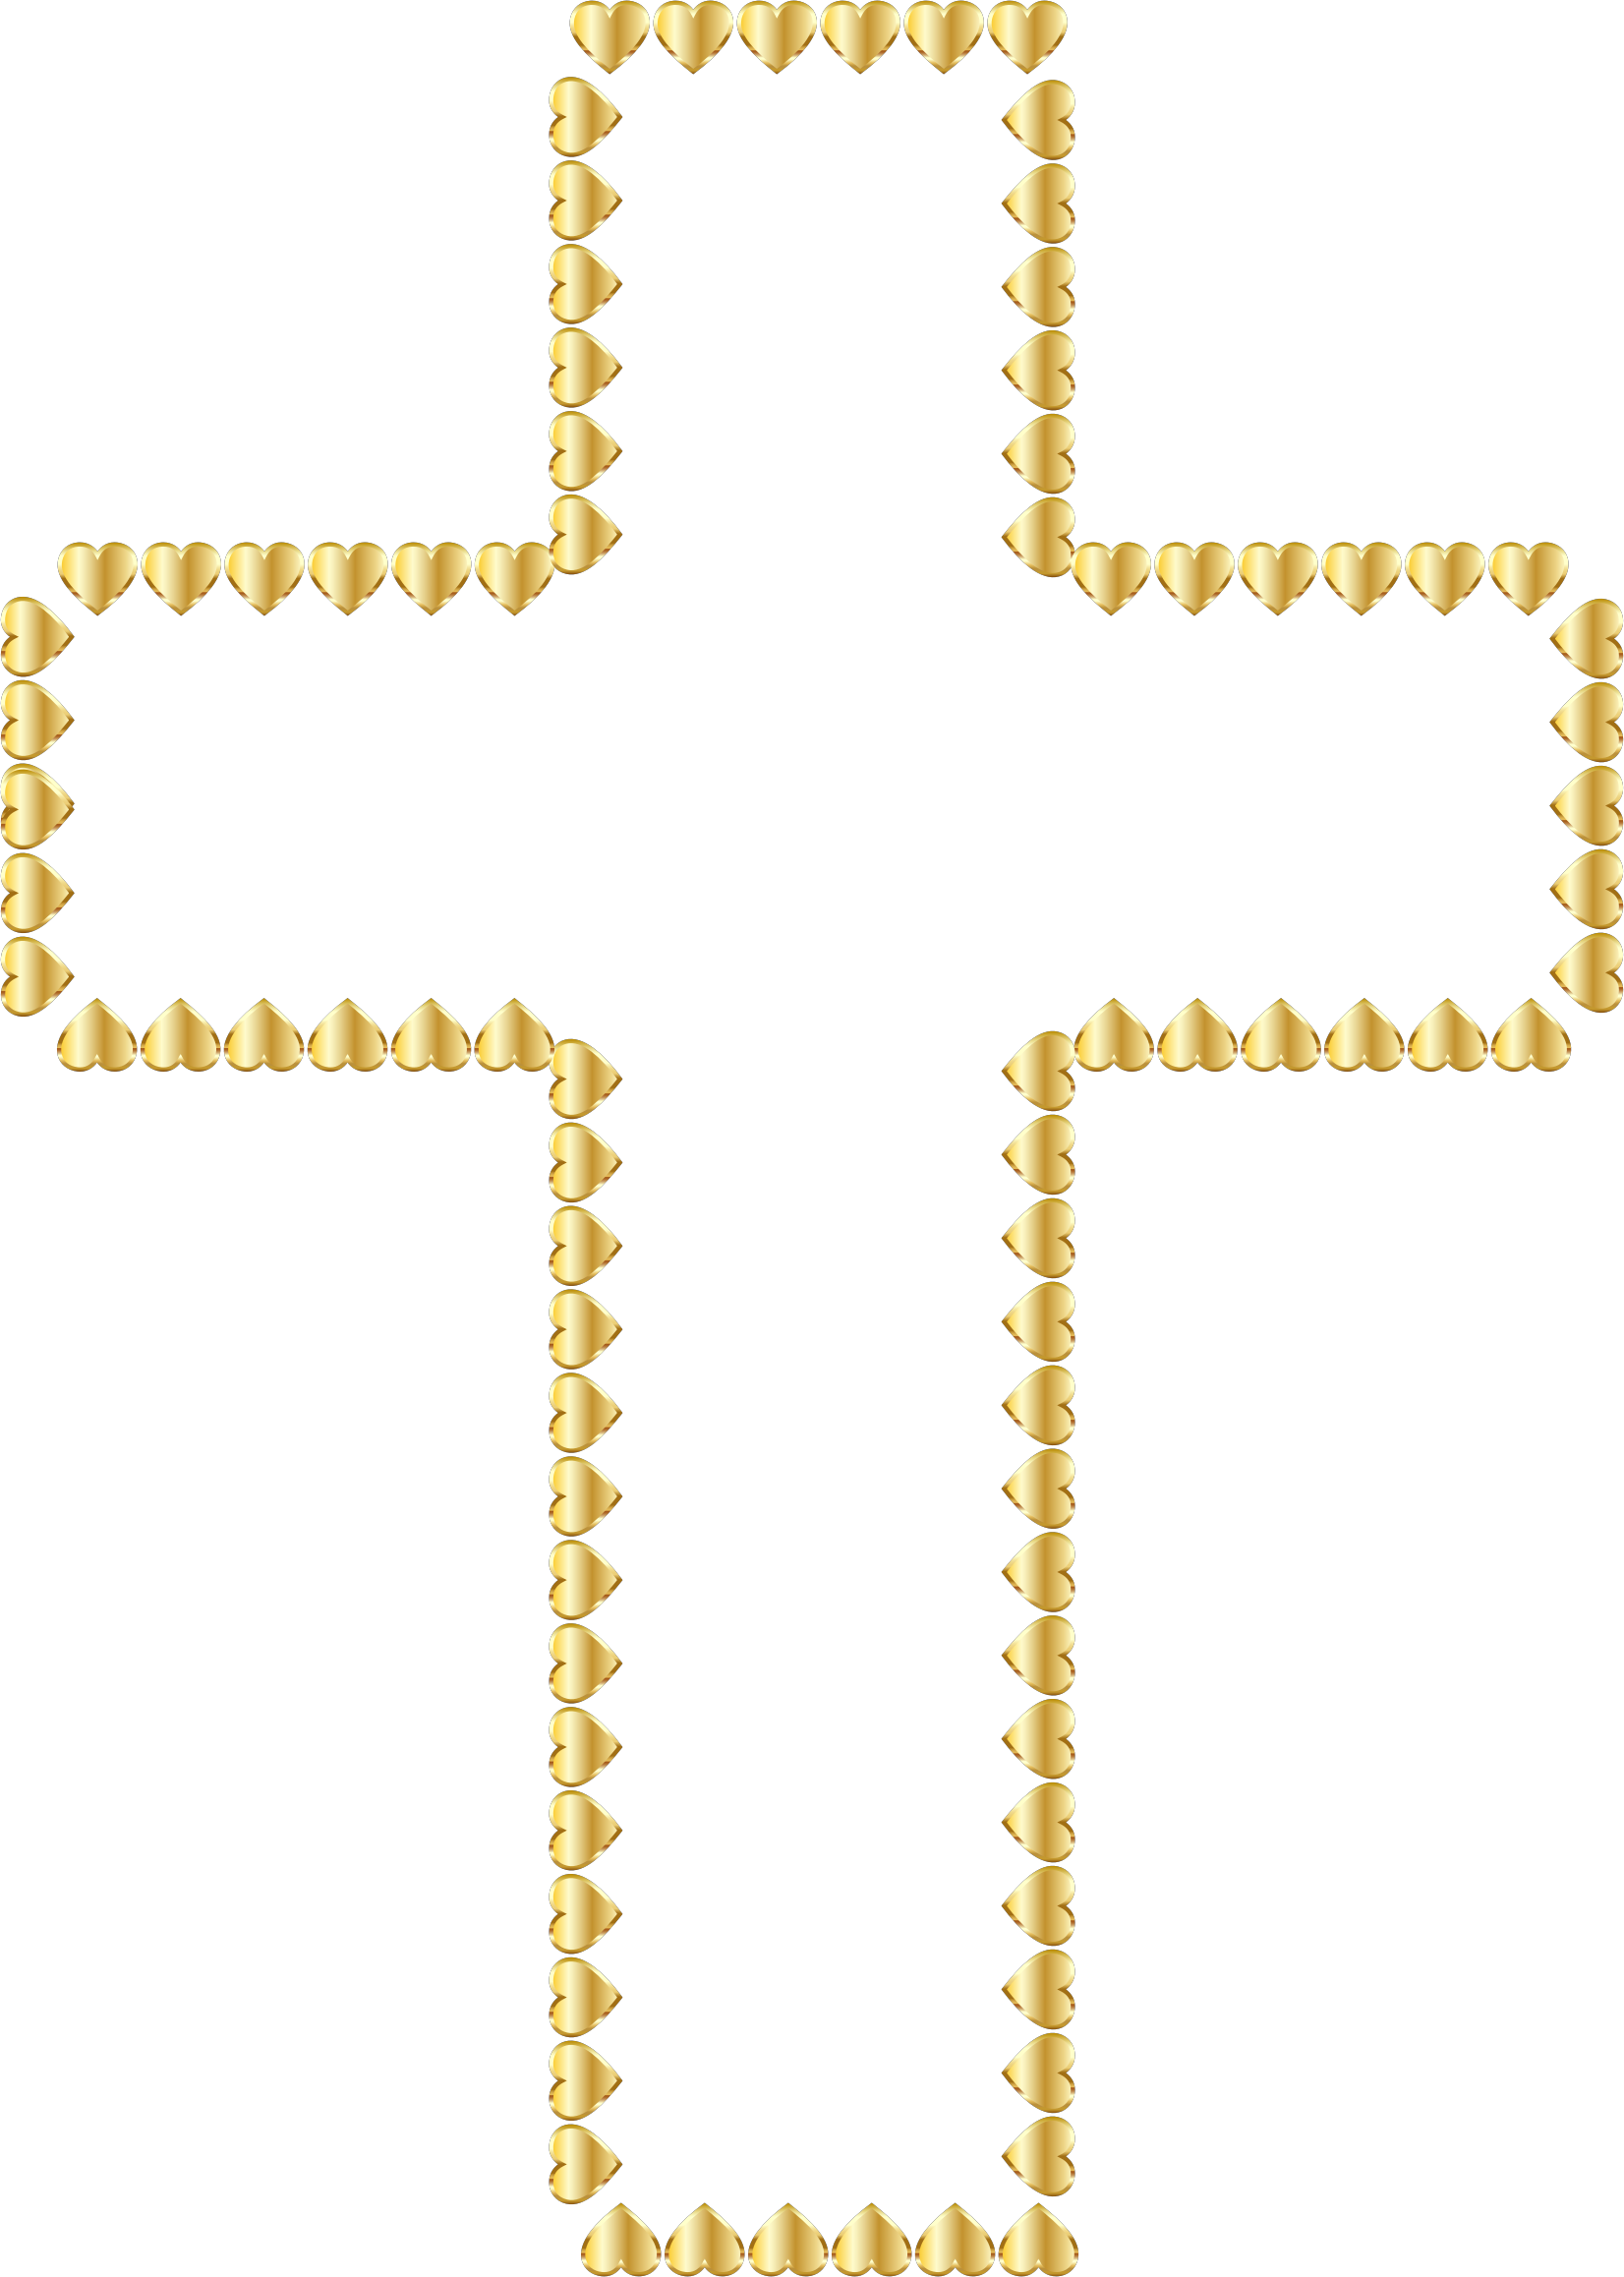 Golden hearts no icons. Clipart cross transparent background